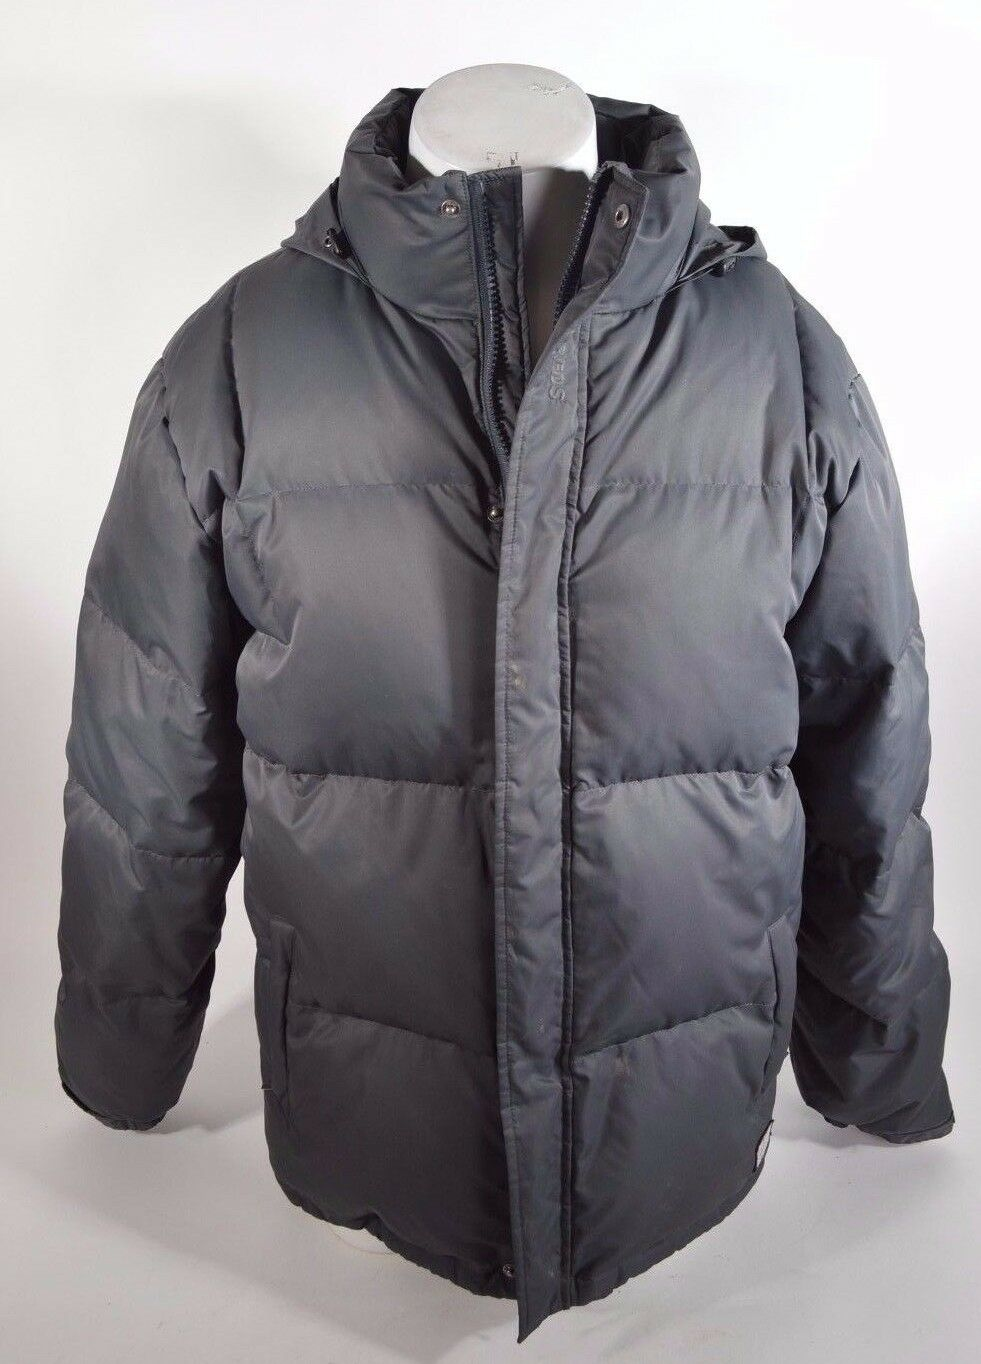 2014 MENS THE HUNDrotS DOWN JACKET WITH ROLL-UP HOOD  172 XL grau USED